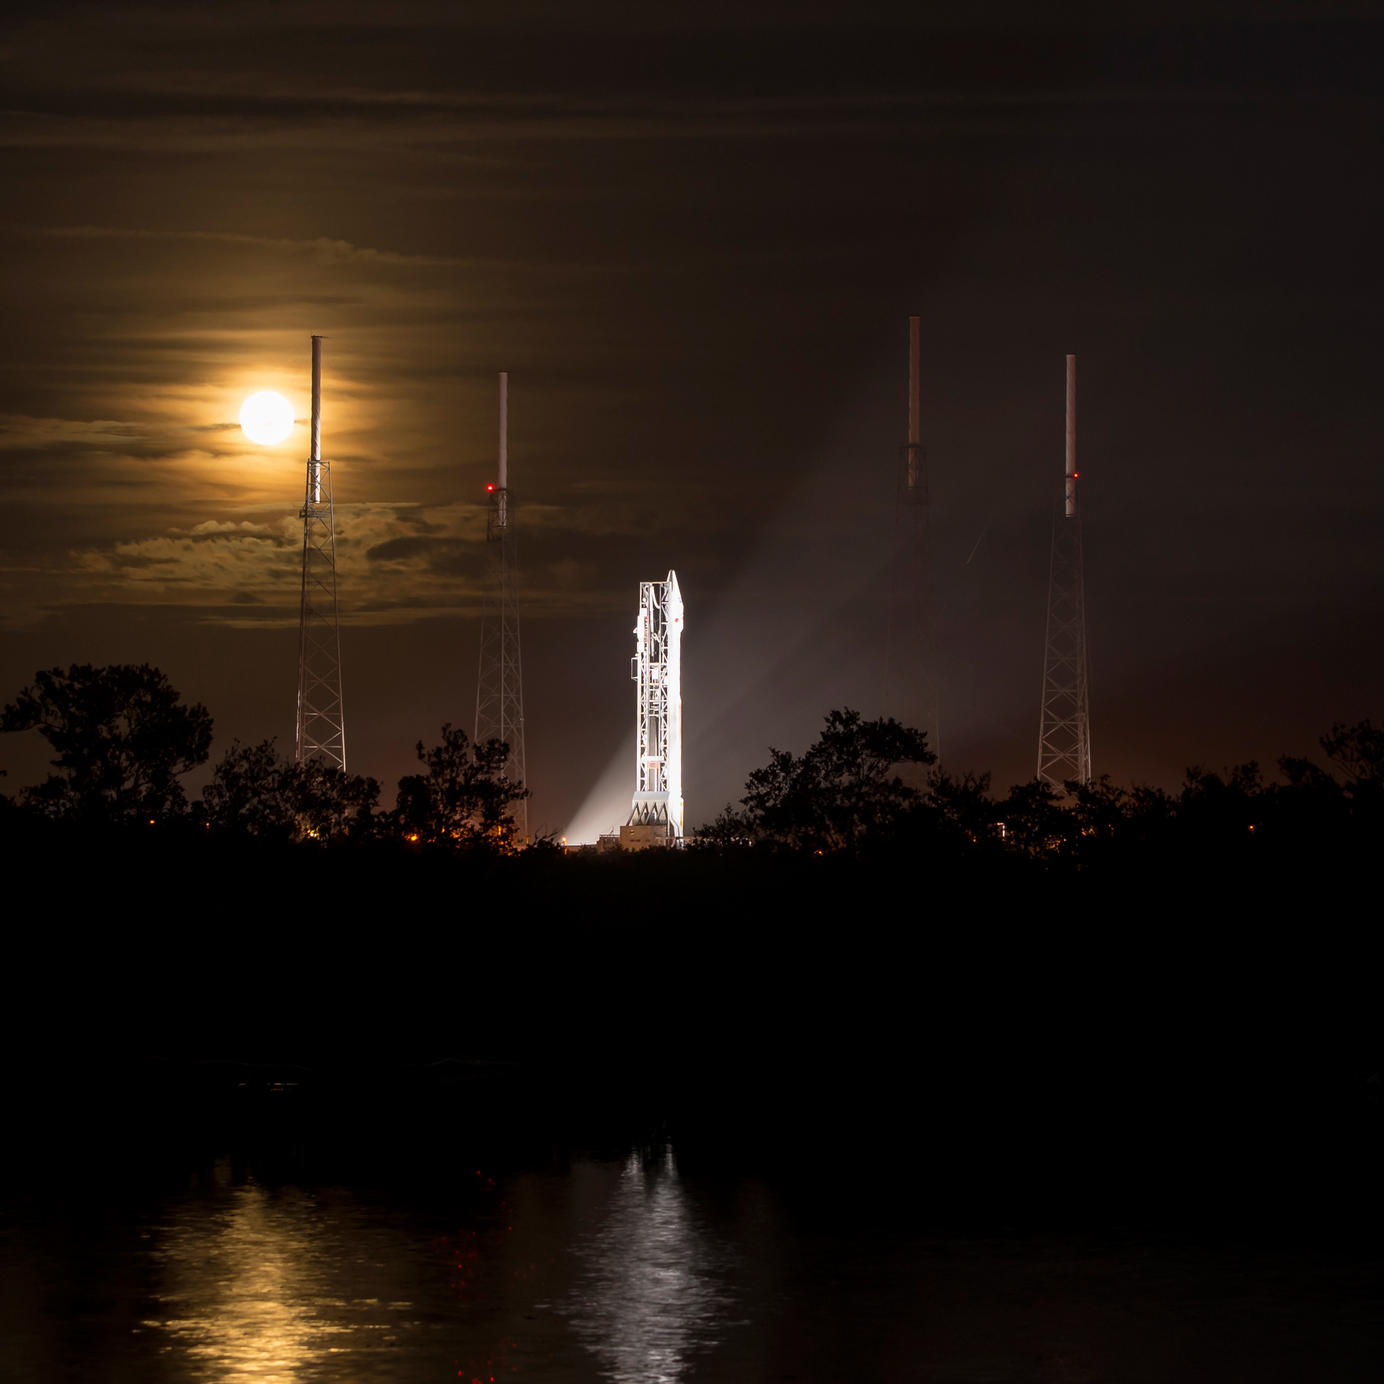 A full moon rises behind the United Launch Alliance Atlas V rocket with NASA's Mars Atmosphere and Volatile EvolutioN (MAVEN) spacecraft onboard at the Cape Canaveral Air Force Station Space Launch Complex 41, Cape Canaveral, Fla. on Nov. 17, 2013.